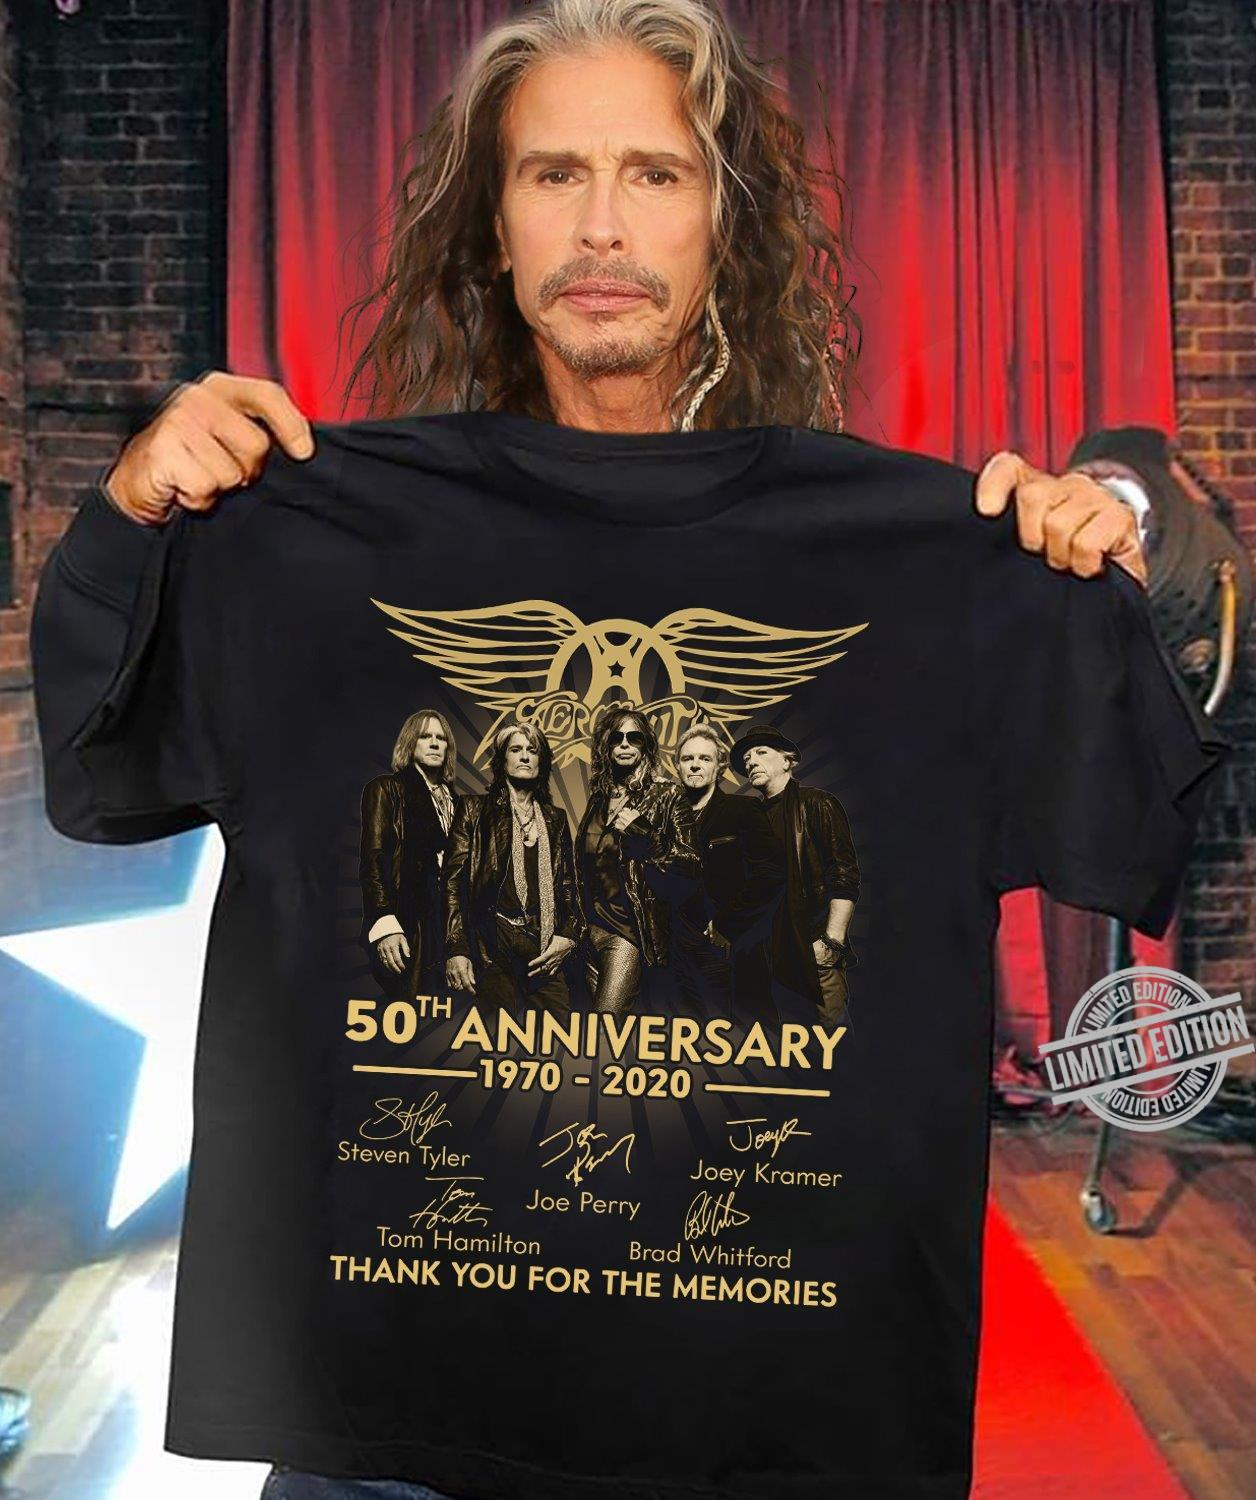 50th Anniversary 1970-2020 Thank You For The Memories Shirt